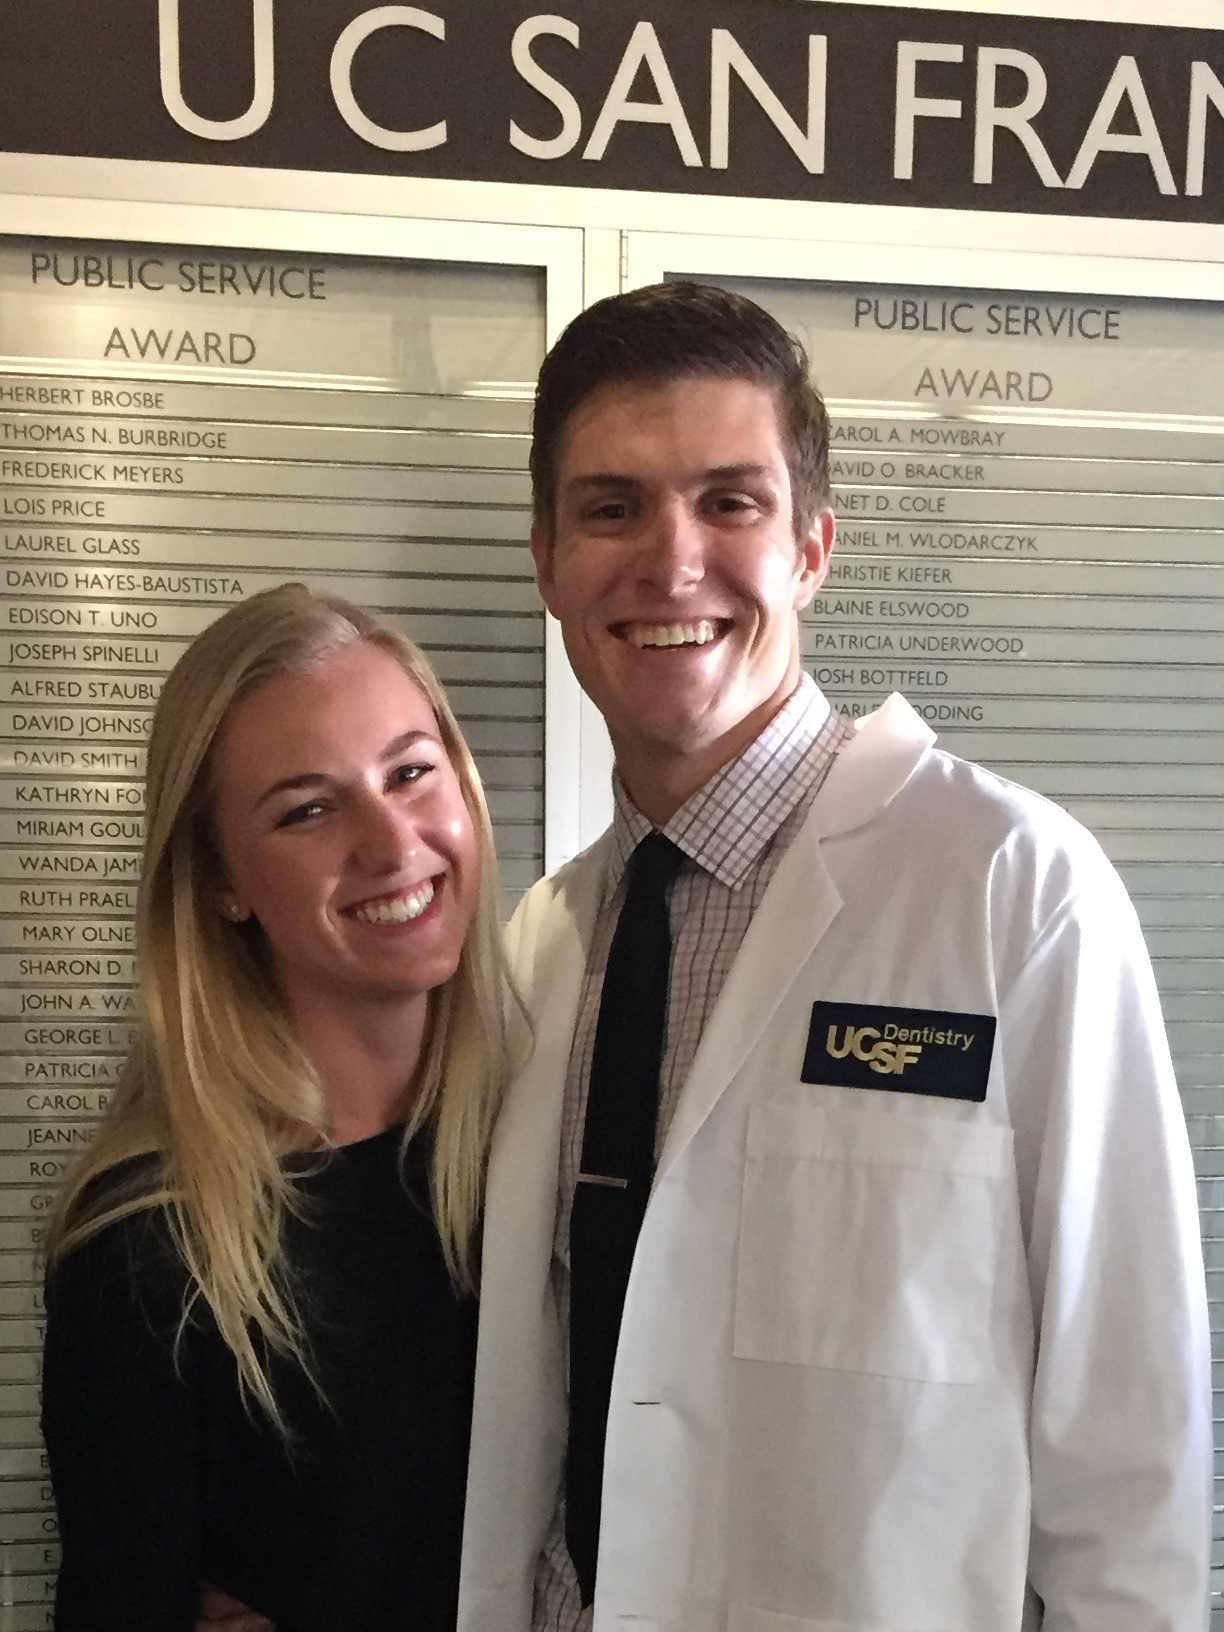 Dean and His Girlfriend at his white coat ceremony.